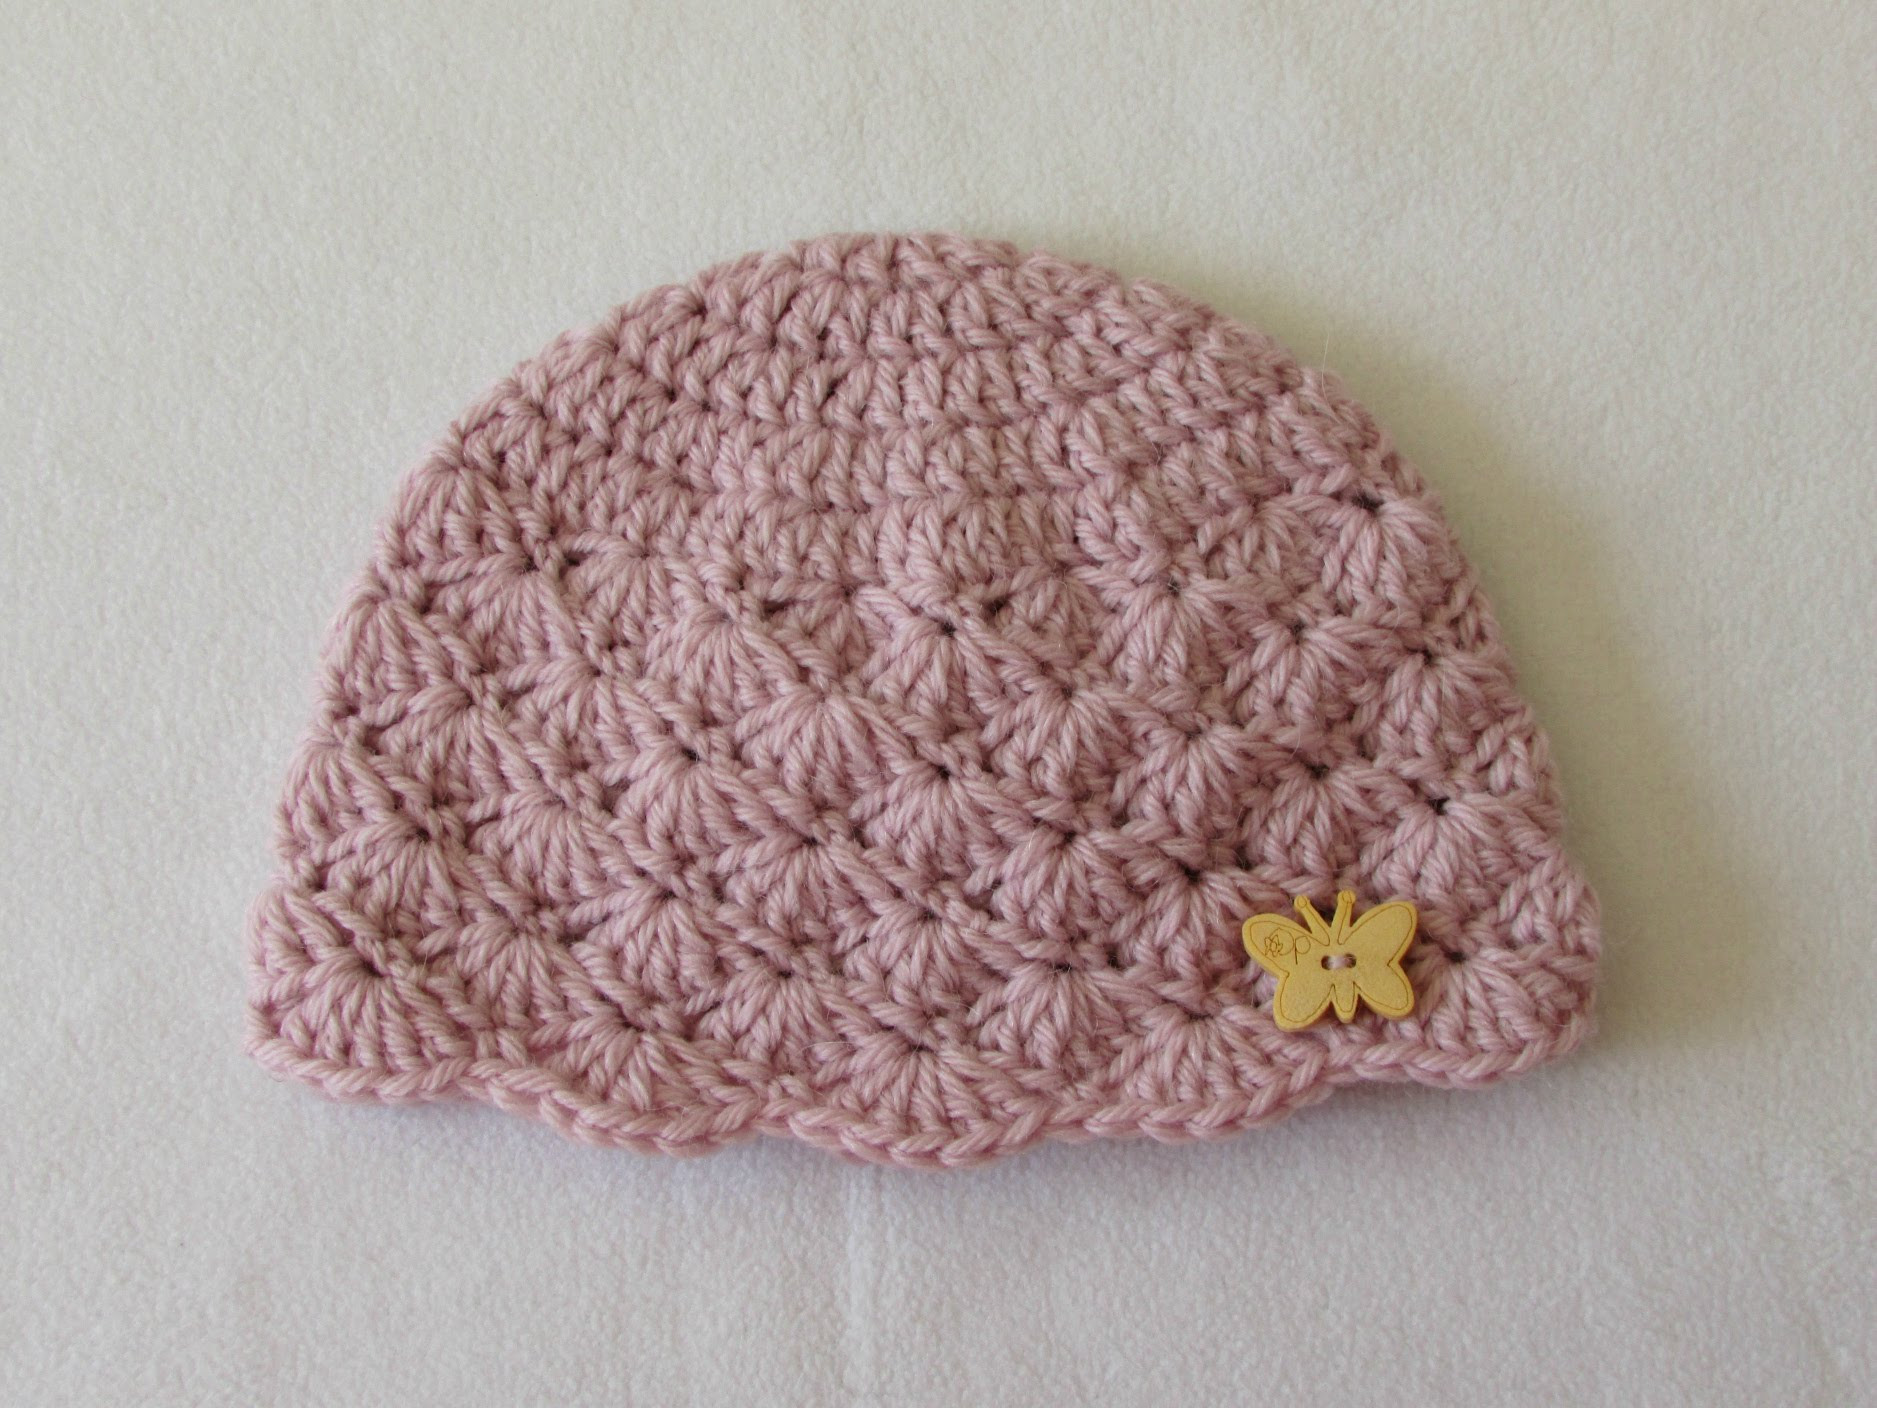 Crochet for Baby Girl Beautiful Modern Crochet Baby Beanie Yishifashion Of Top 41 Pics Crochet for Baby Girl